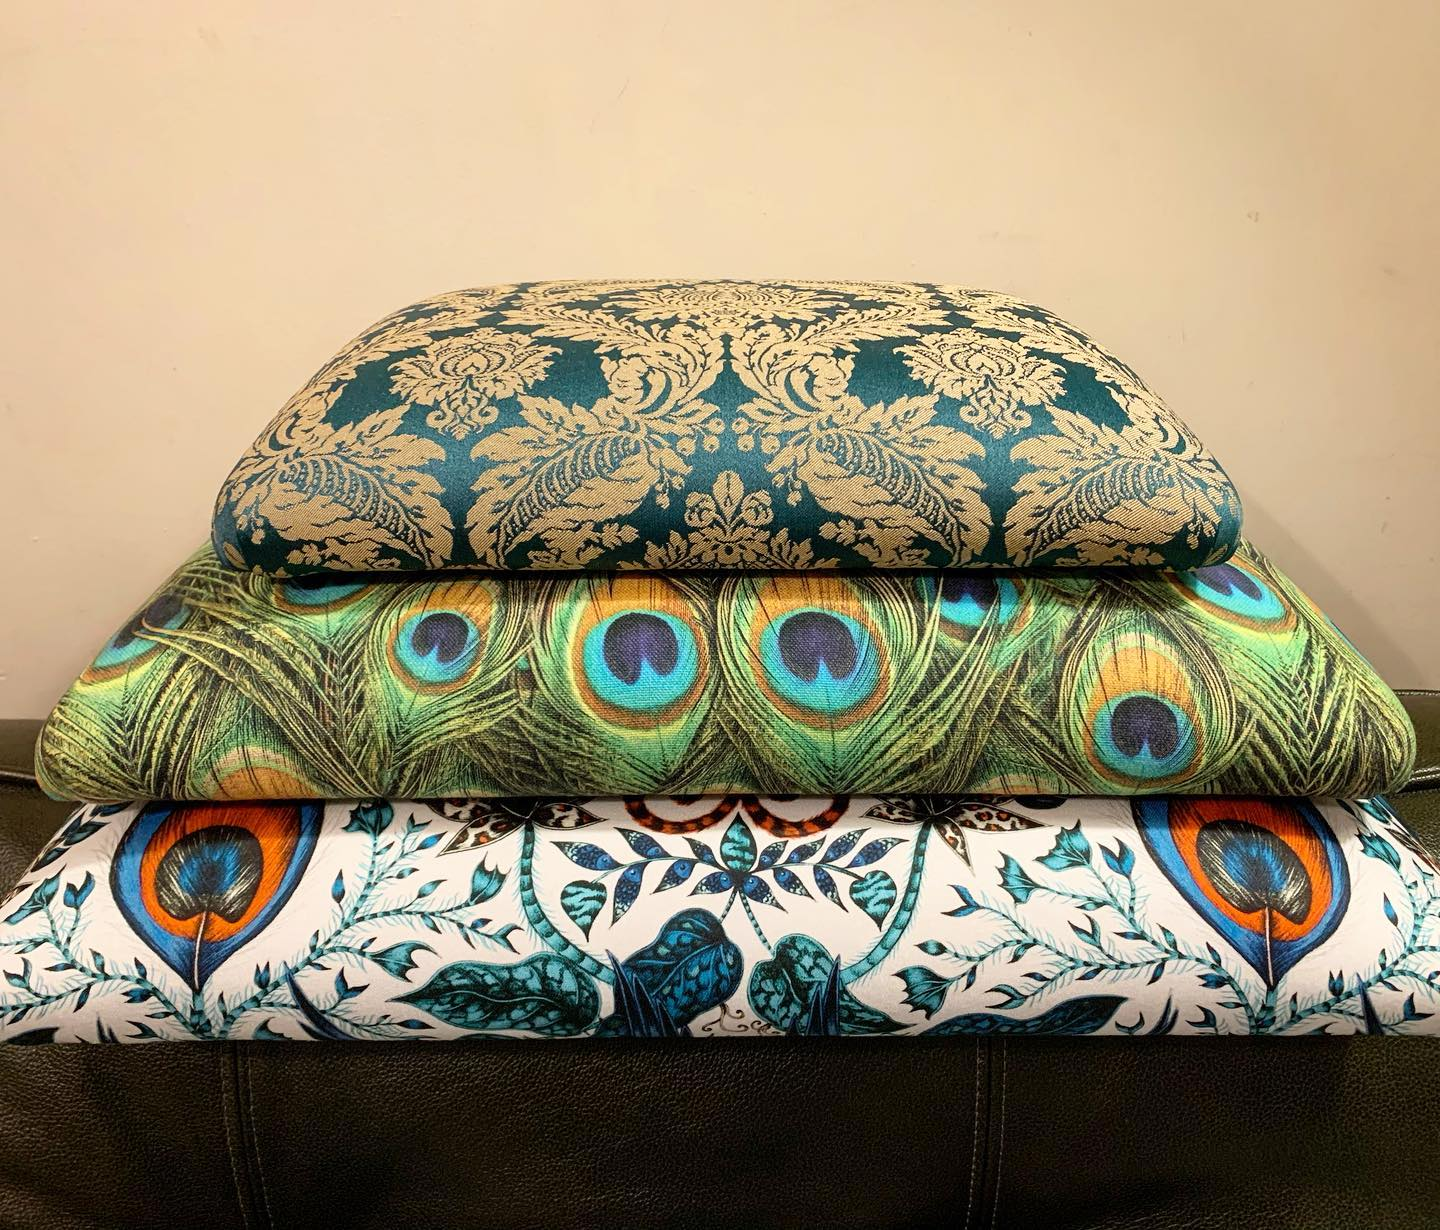 Making a lovely pile of lids ready for some bespoke ottomans we're working on at the moment.  So satisfying! We'll share some photos once they're finished ....#handmade #homewares #upholstery #beautifulfabric #paisley #contemporaryfabric #design #bold #pattern #design #home #gingerandtweed